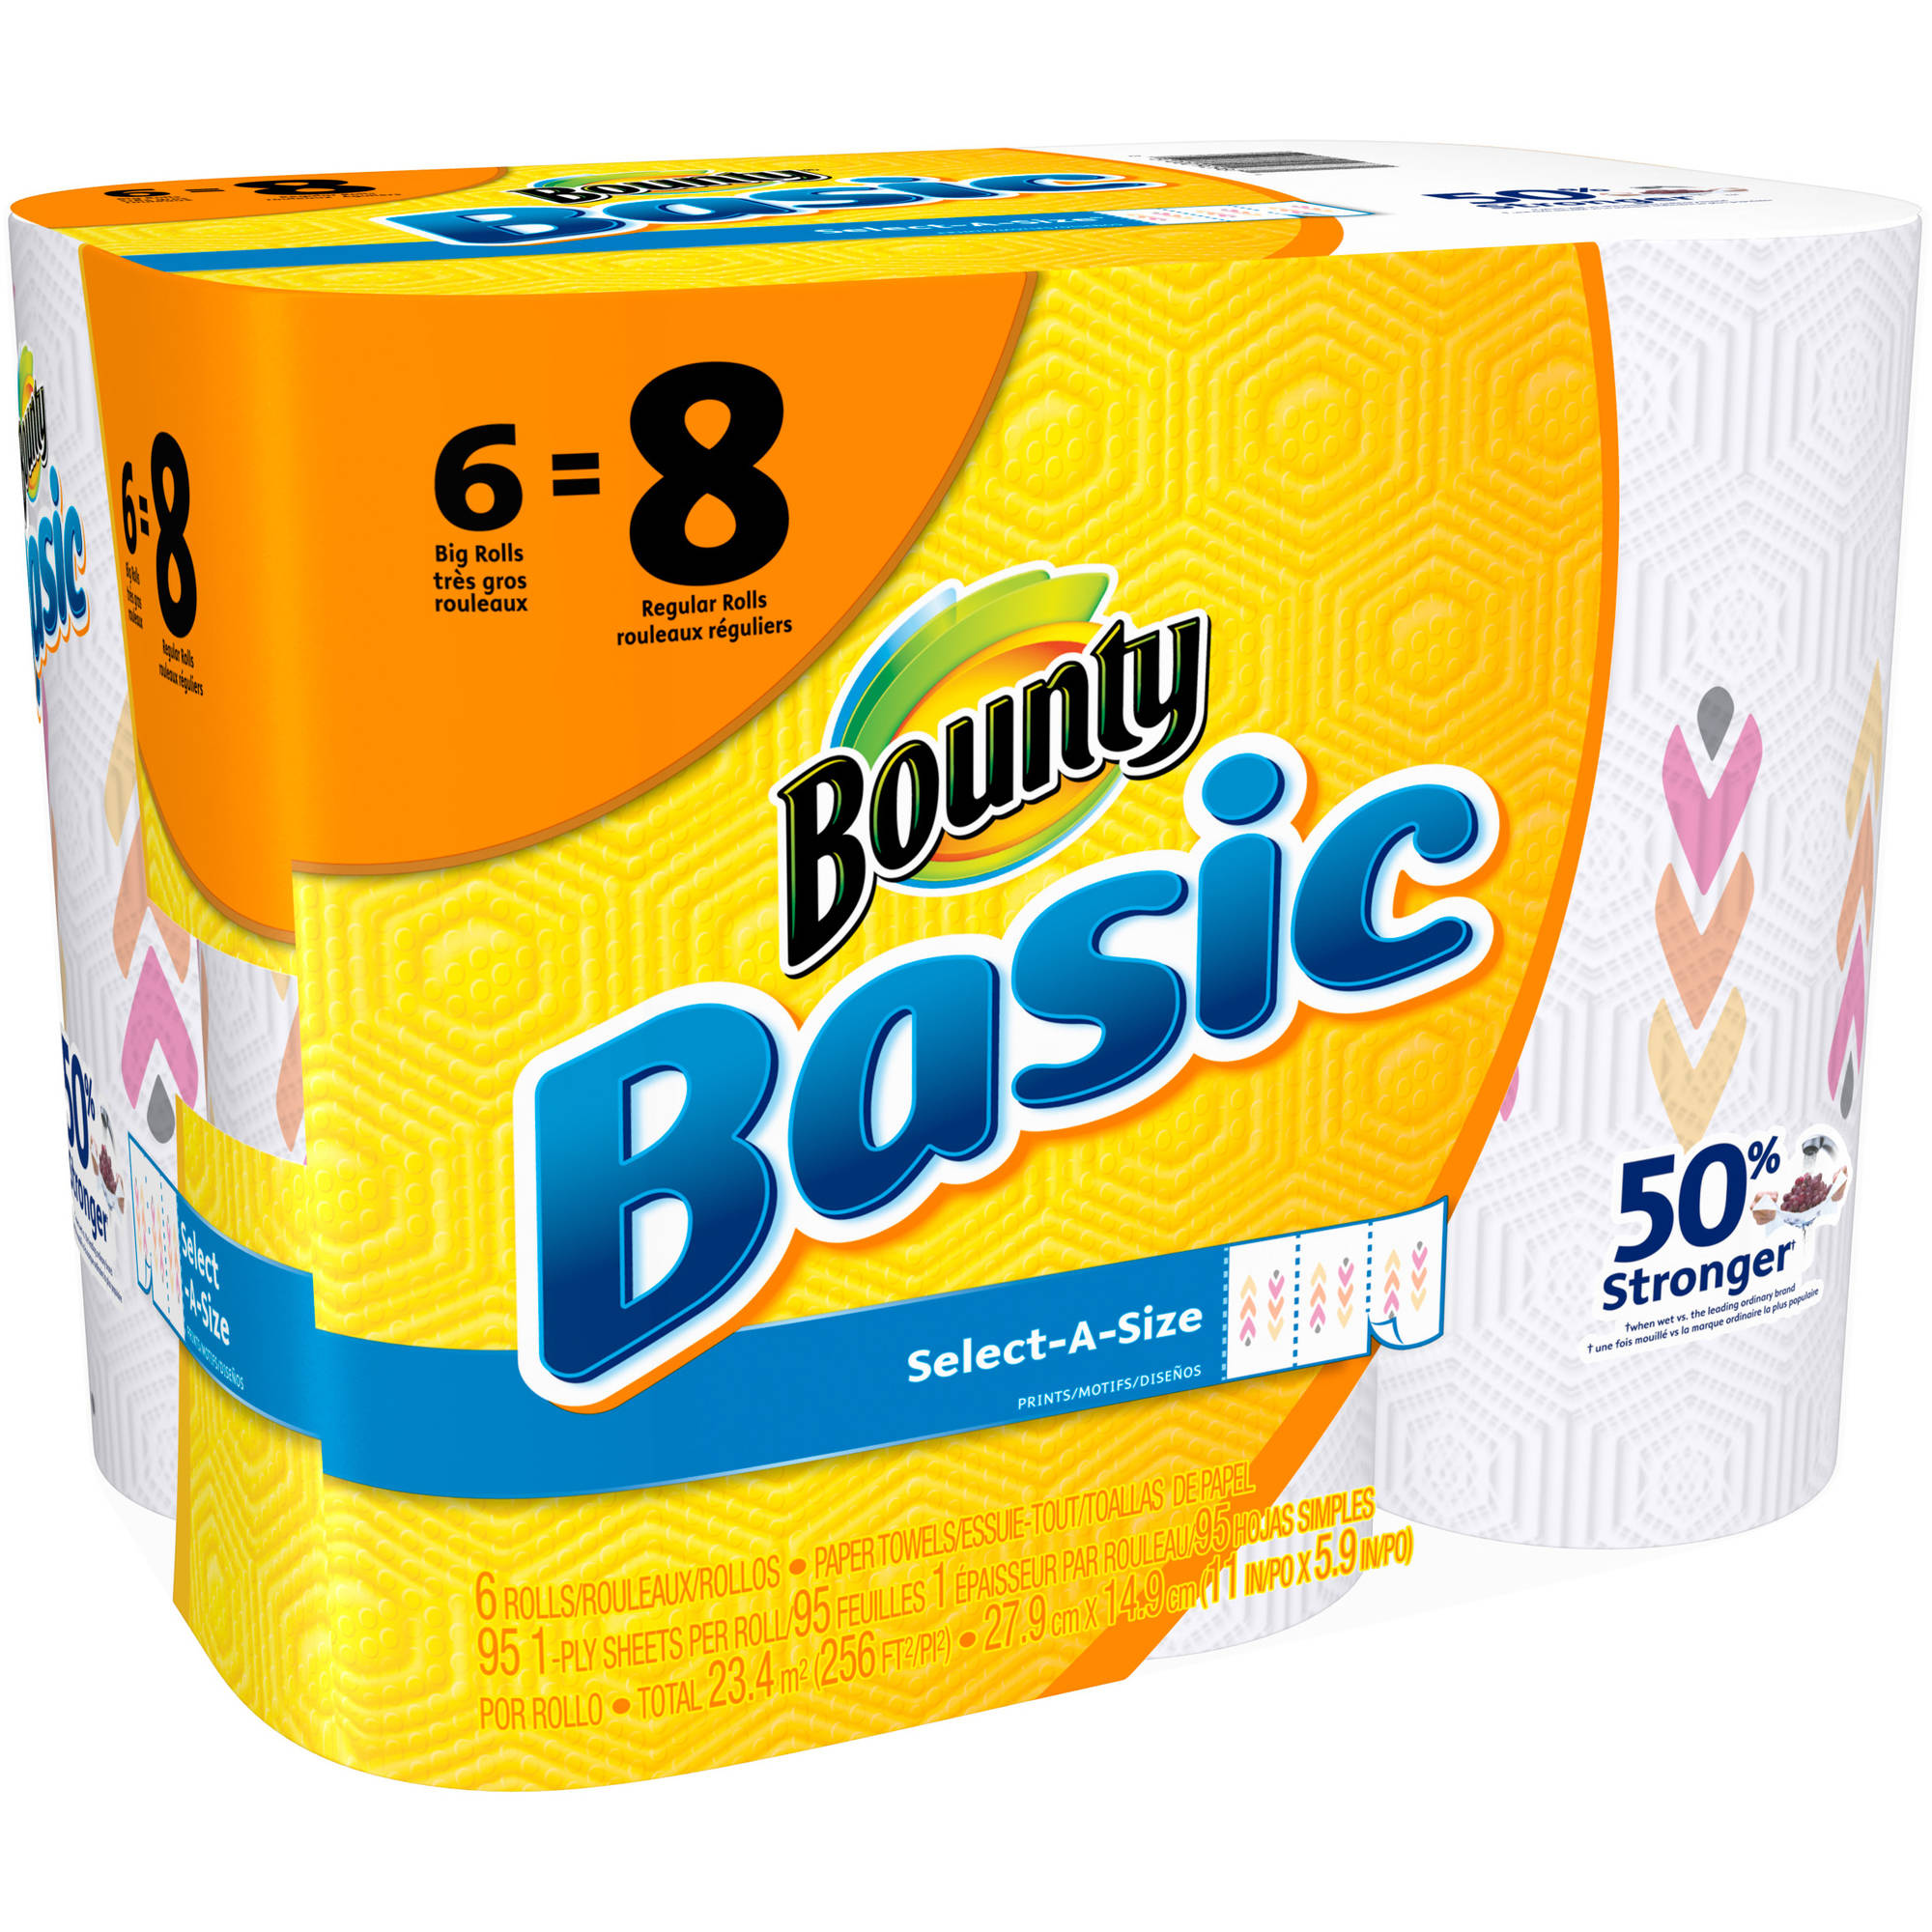 Bounty Basic Big Roll Select-a-Size Print Paper Towels, 95 sheets, 6 rolls